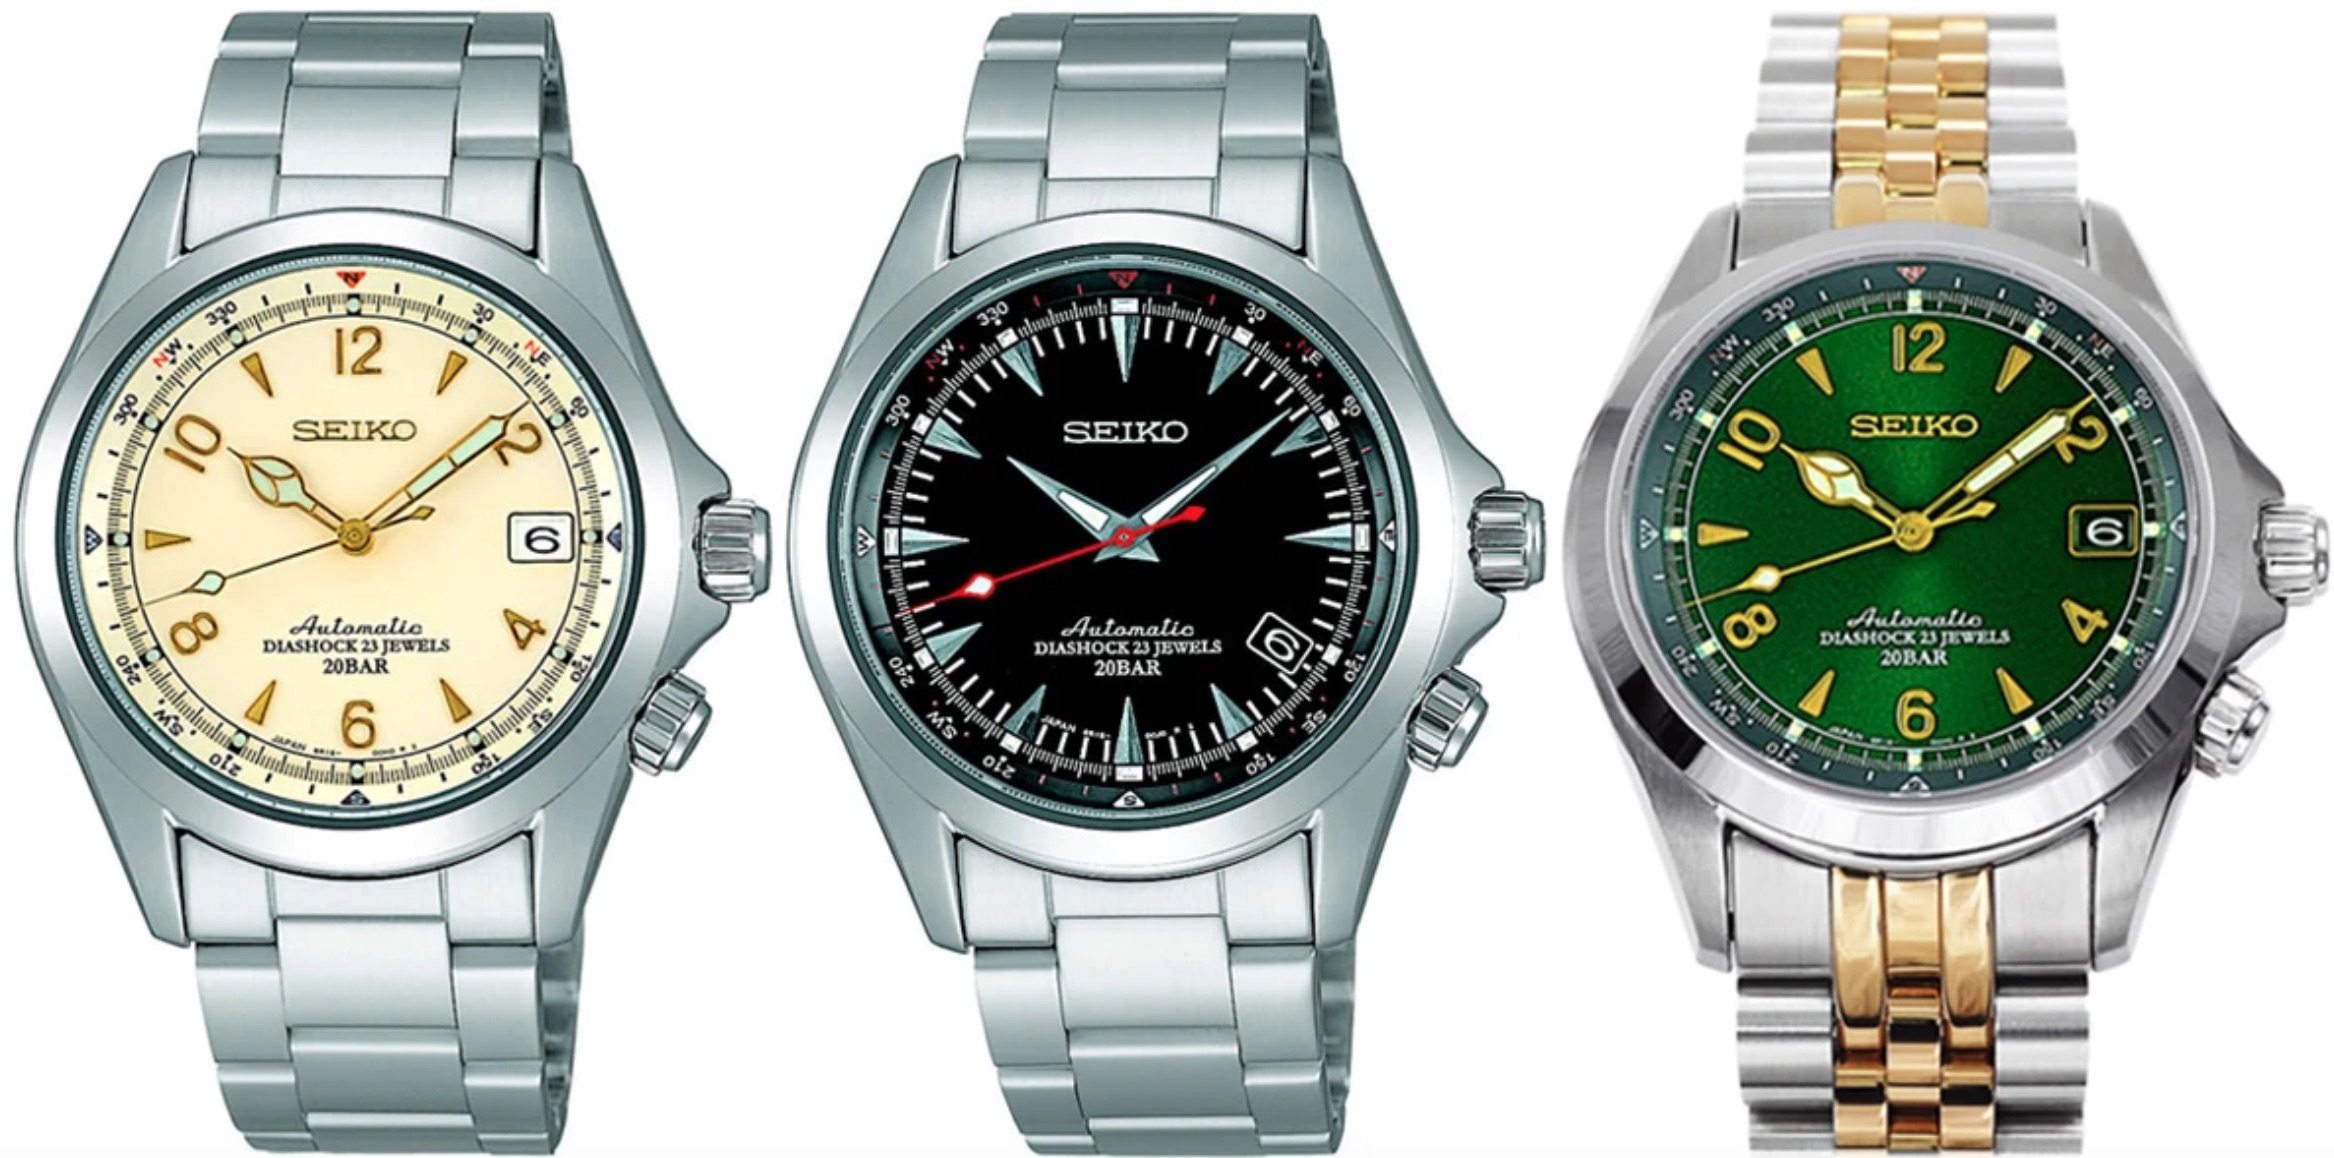 Seiko Alpinist 2006 Models, Alpinist Watches